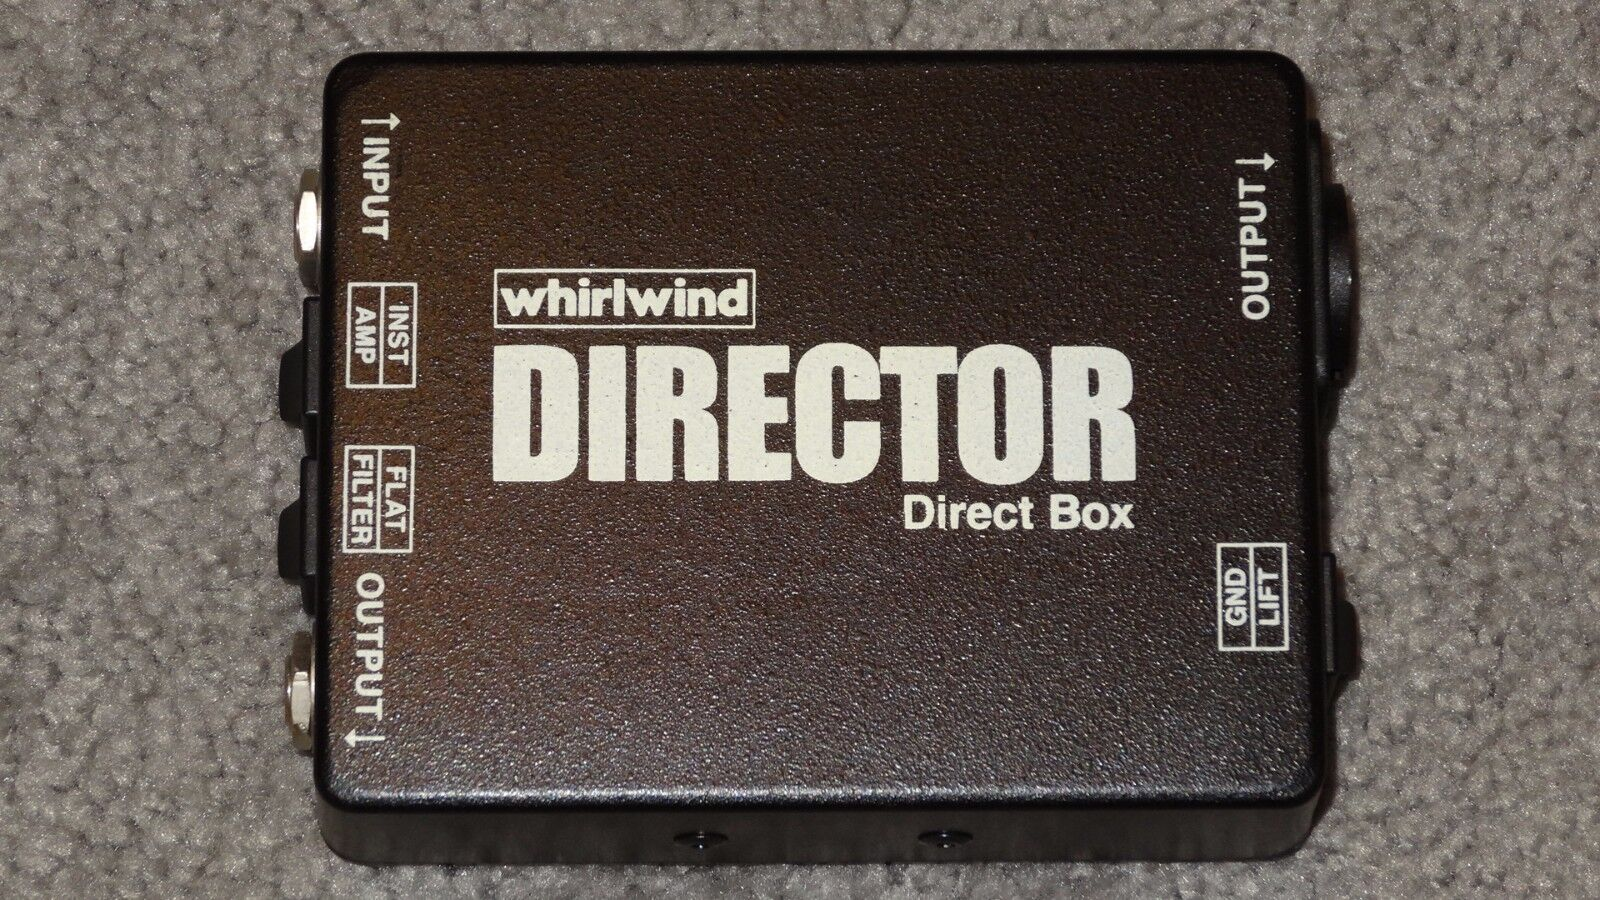 Whirlwind Director Direct Box never used